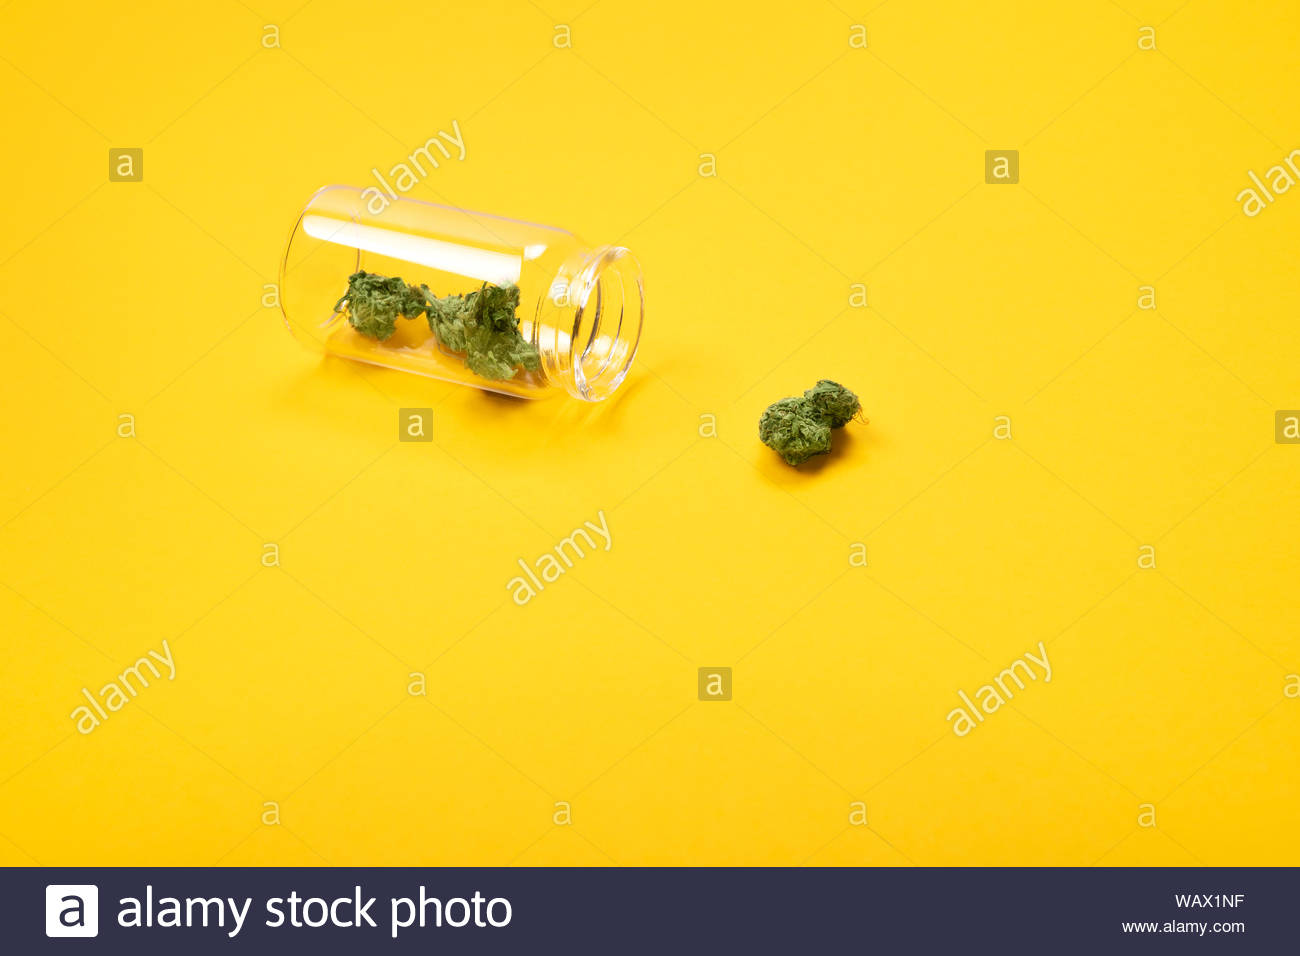 Dried medical marijuana buds in a small open glass jar and scattered aside on yellow background. Alternative treatment. Medical cannabis.Place for tex Stock Photo